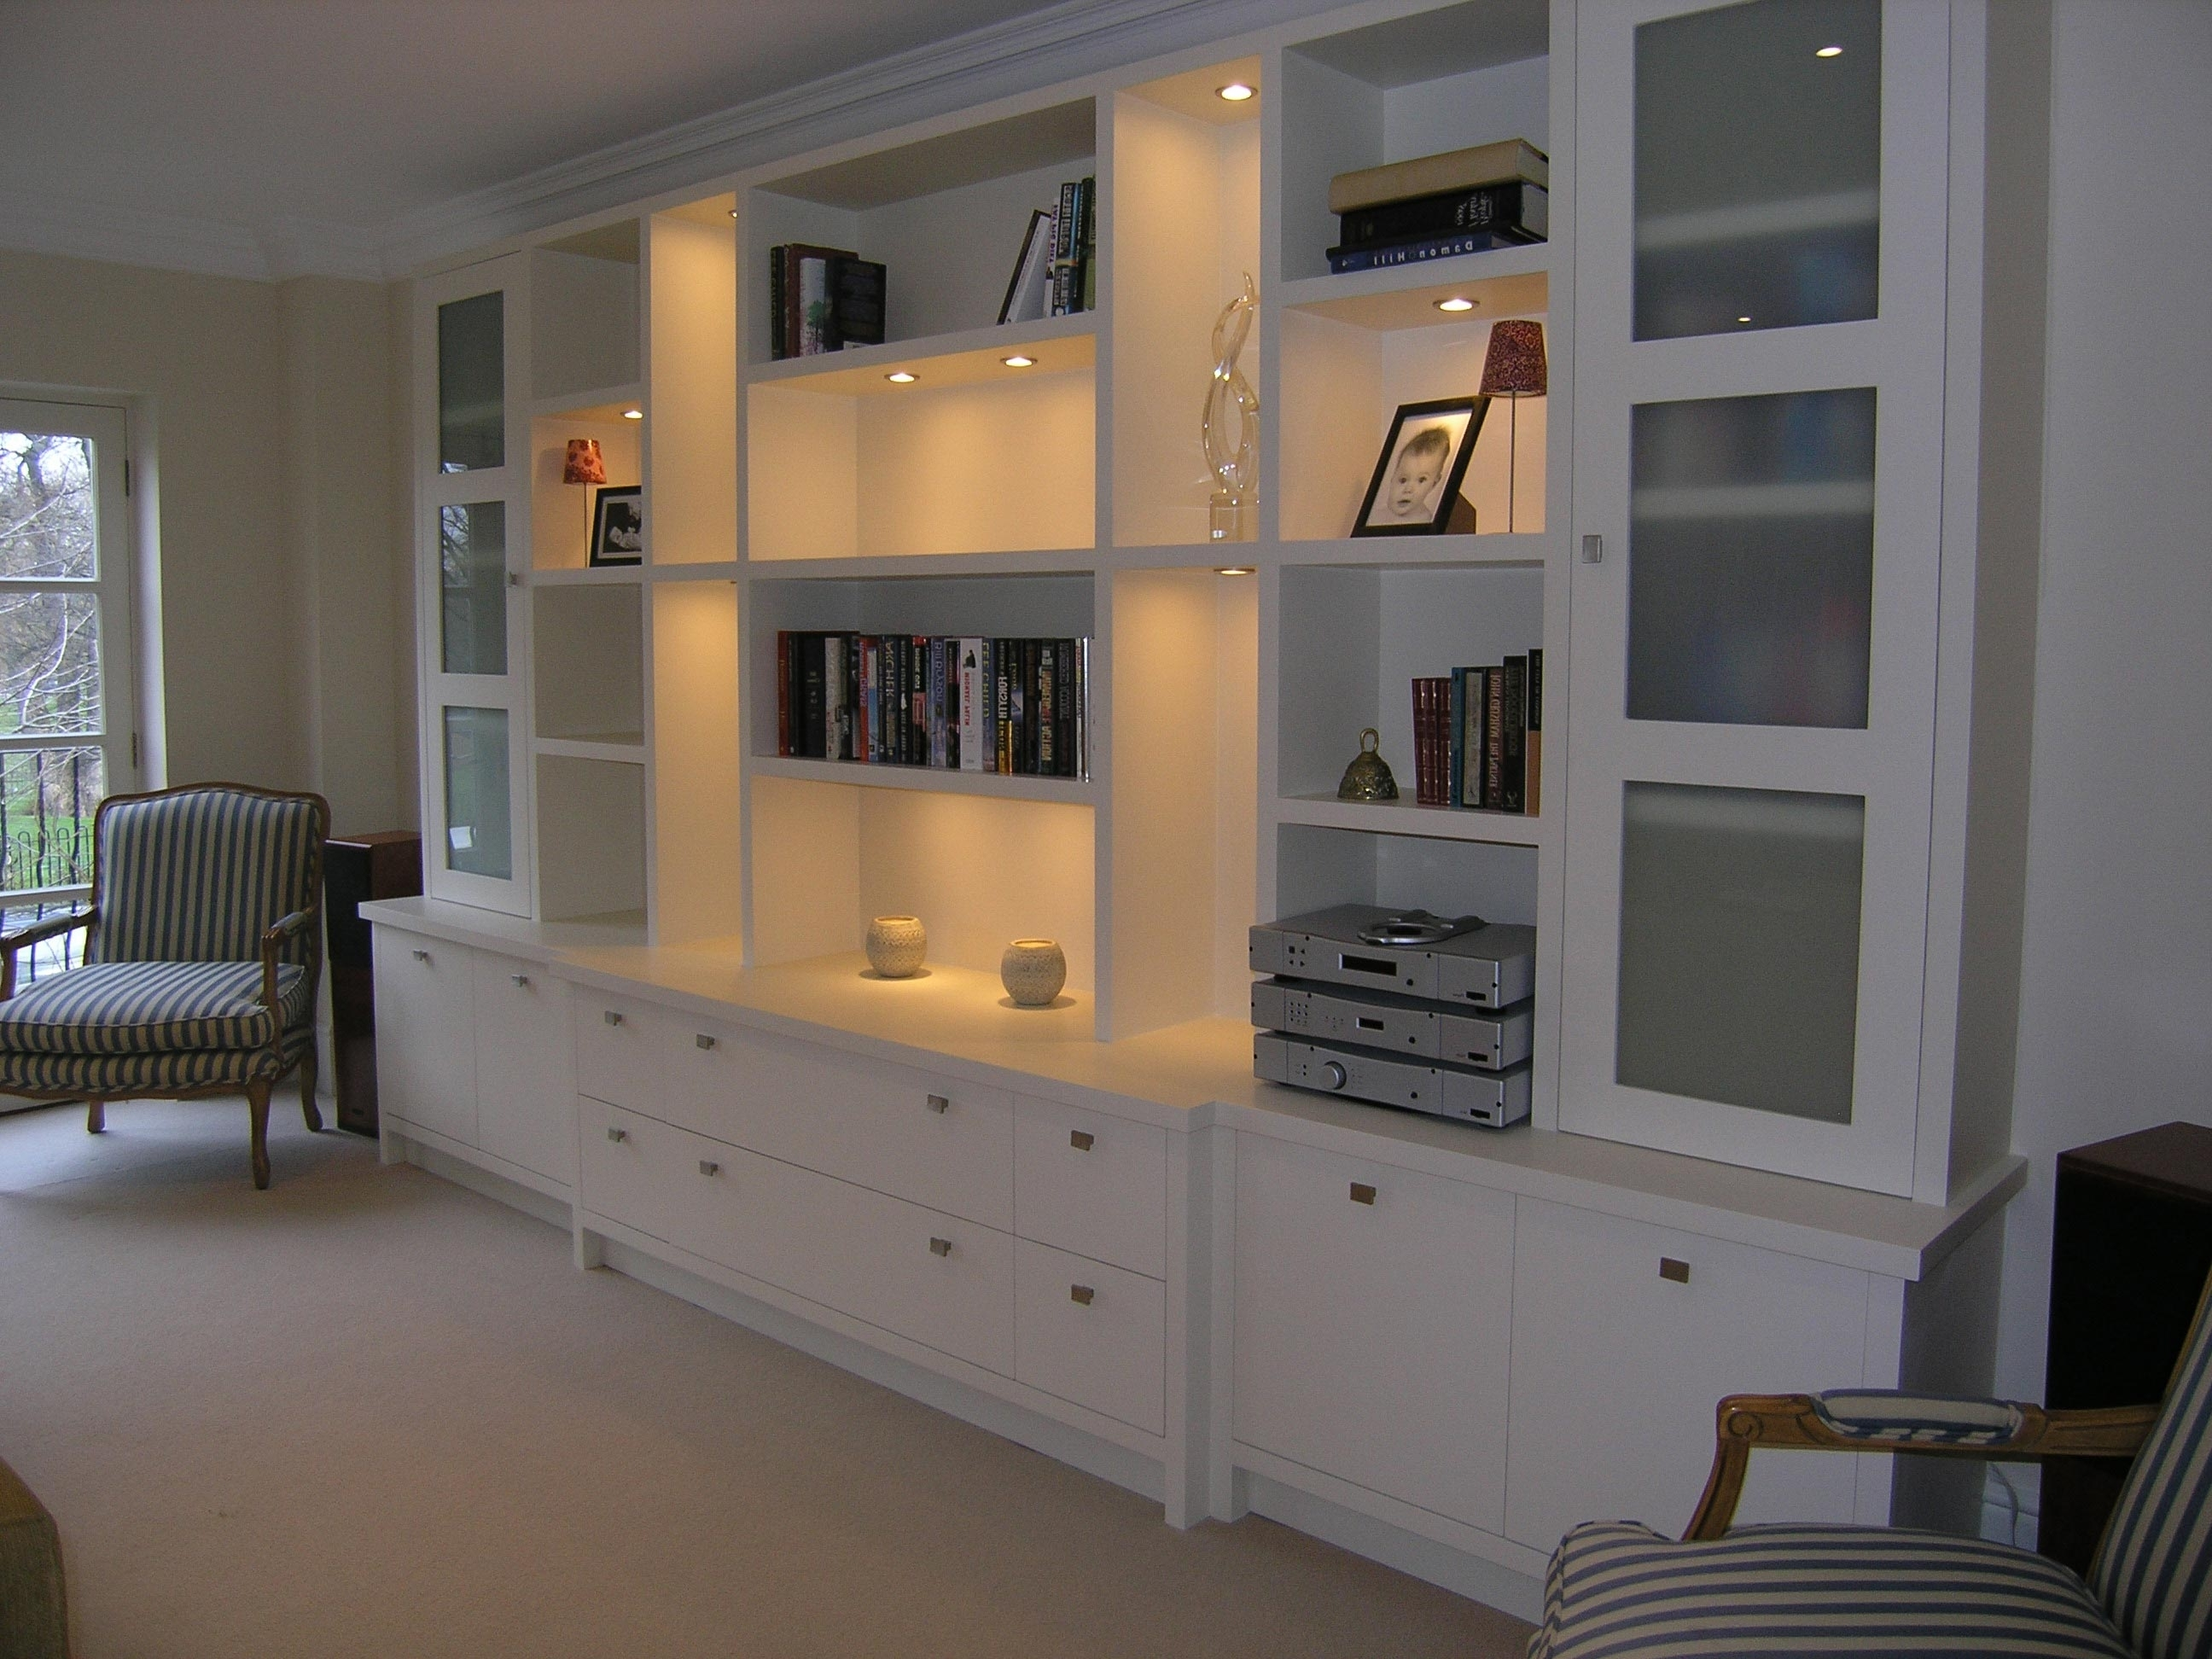 Fashionable Fitted Cabinet Living Room – Childcarepartnerships Regarding Living Room Fitted Cabinets (View 5 of 15)